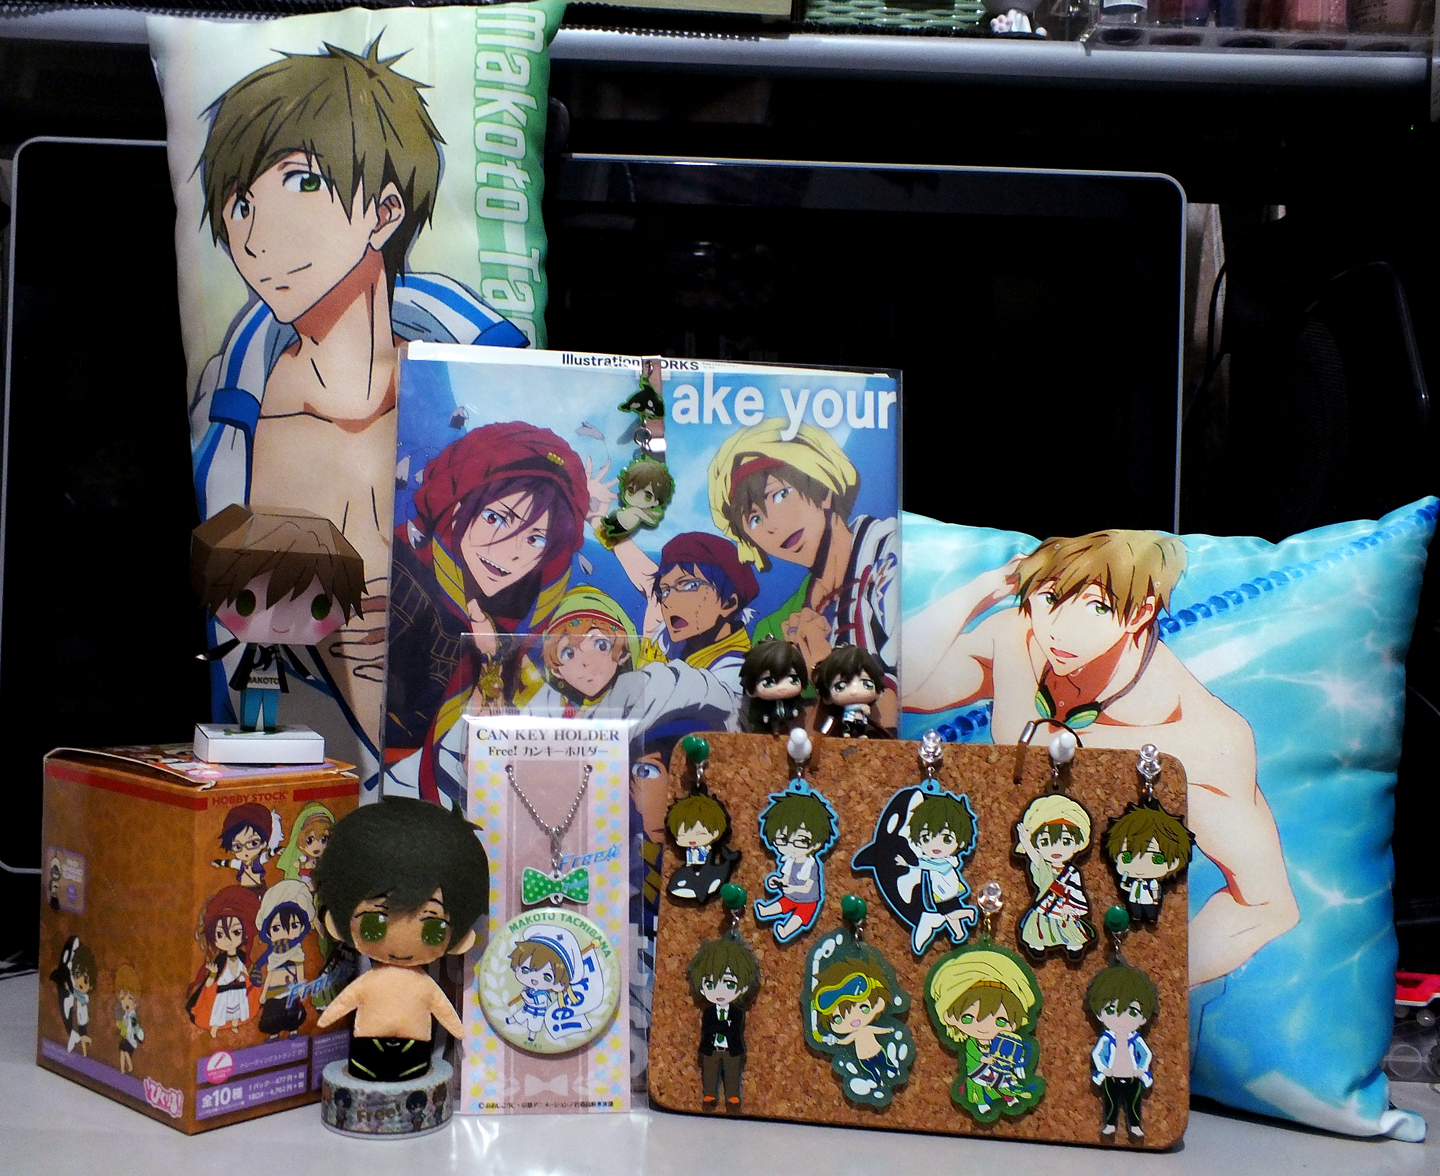 strap badge movic cushion hobby_stock rubber_strap sol_international kyoto_animation colorfull_collection pic-lil! yupon contents_seed nanase_haruka free! tachibana_makoto colorfull_collection_-_free! pic-lil!_free!_trading_strap free!_yura_yura_clip_collection free!_clear_rubber_strap_~in_vacation~ ooji_kouji free!_clear_rubber_strap_~in_oasis~ free!_can_key_holder pic-lil!_free!_trading_strap_2fr